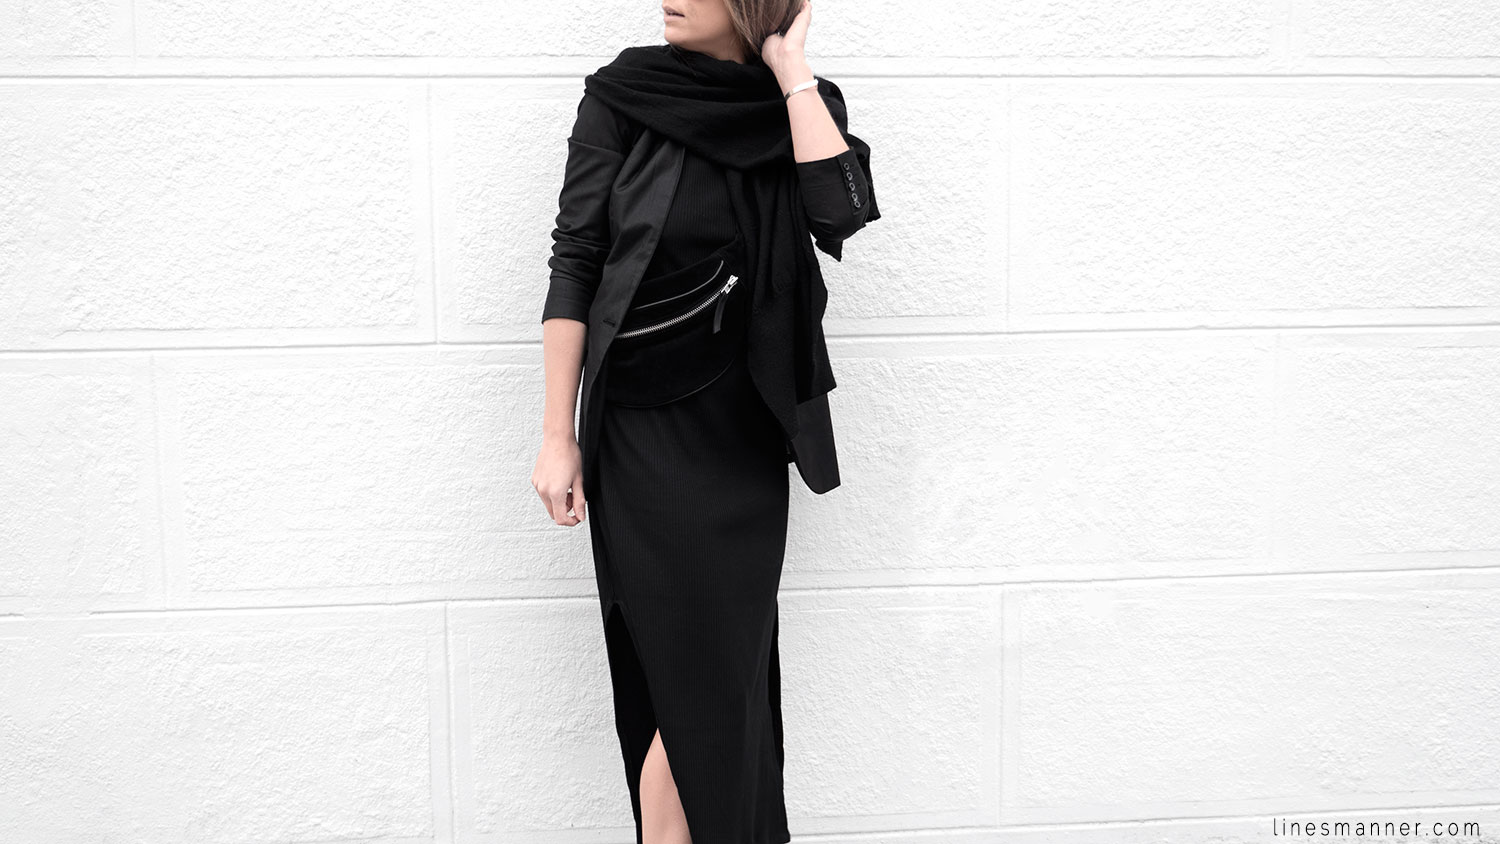 Lines-Manner-Black-Tone_on_Tone-Monochrome-Minimal-Sophistication-casual-Sporty_Luxe-Slit_Dress-Thrid_Form-Blazer-Essentials-Details-Basics-Timeless-Verstatile-Staple-Wardrobe-Sleek-Clean_Lines-All_Black_Everything